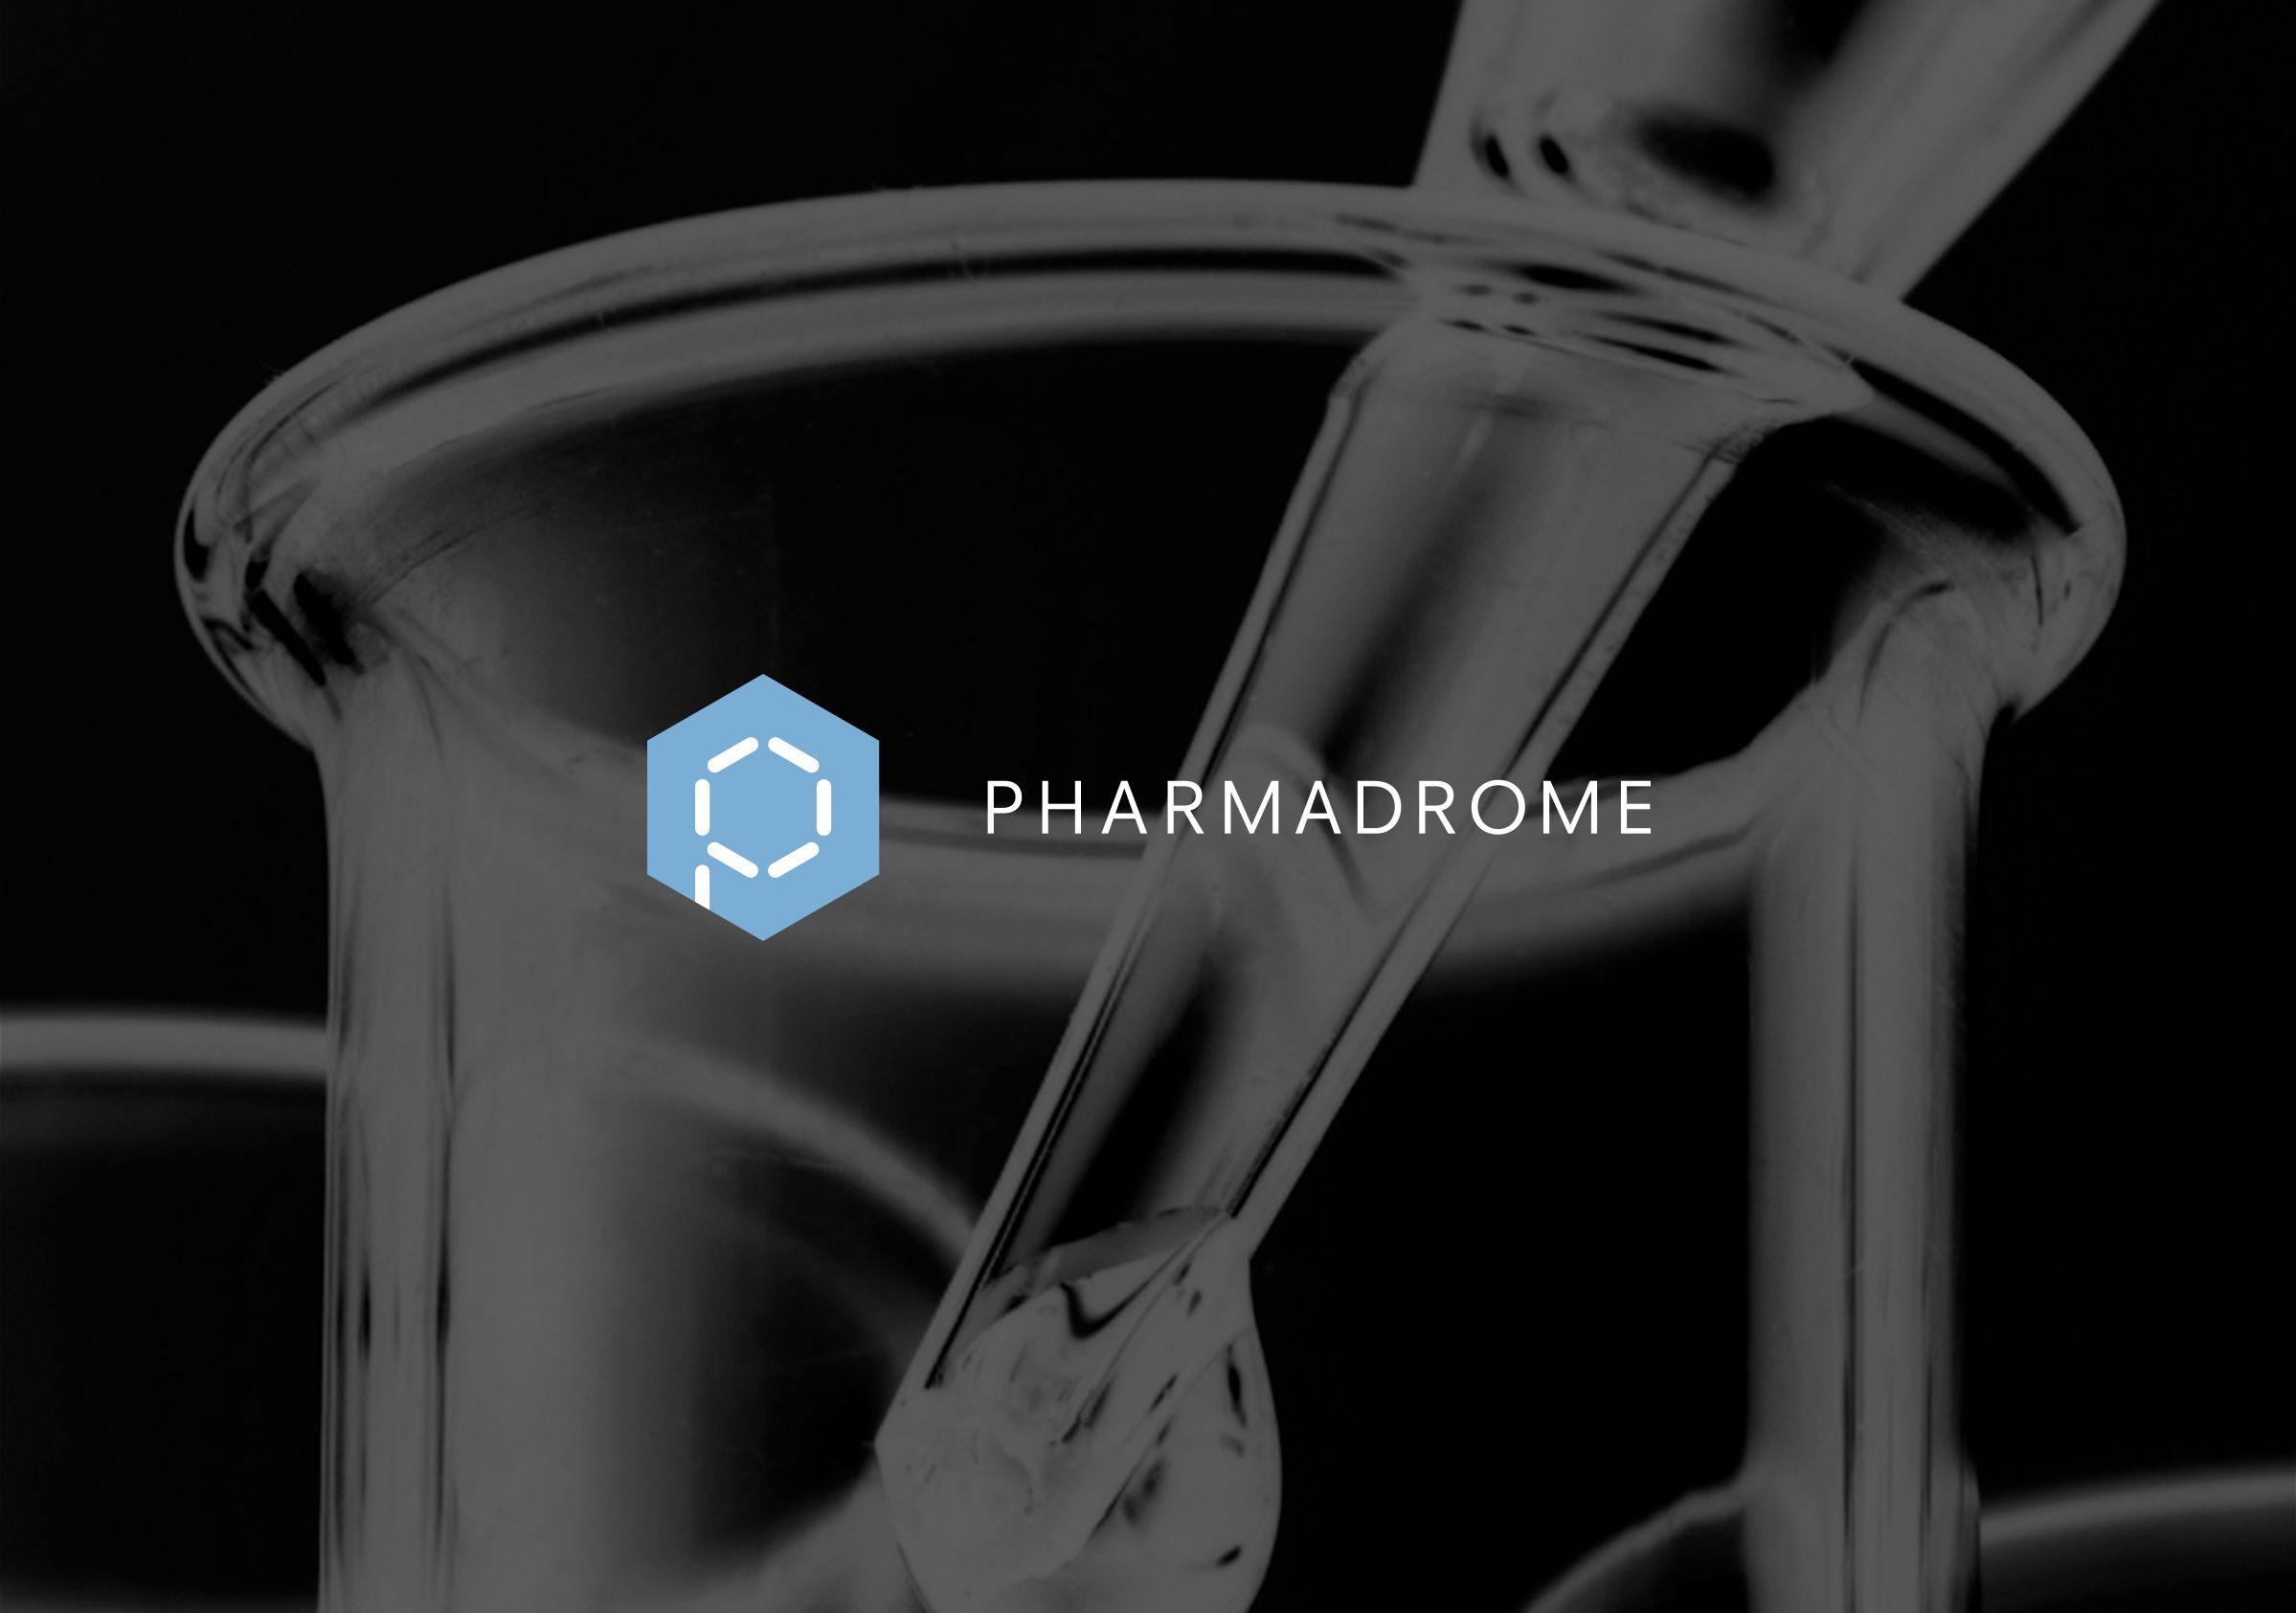 Pharmadrome, a pharmaceutical recruitment consultancy by Ottawa Graphic Design Studio idApostle